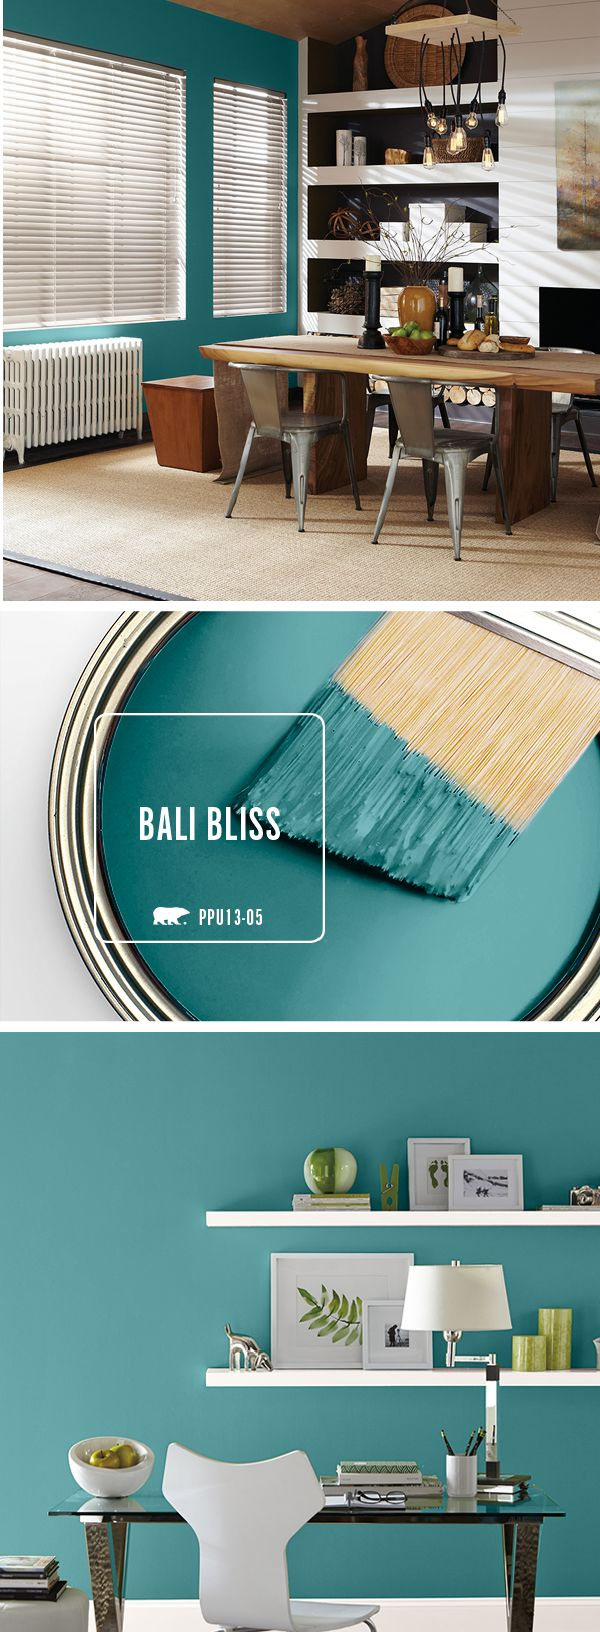 Bali Bliss is the perfect teal tone to help incorporate a chic and eclectic feel to your home. Try pairing this unique paint shade with neutral accessories and hints of wood to add a cozy touch to your dining room or home office.